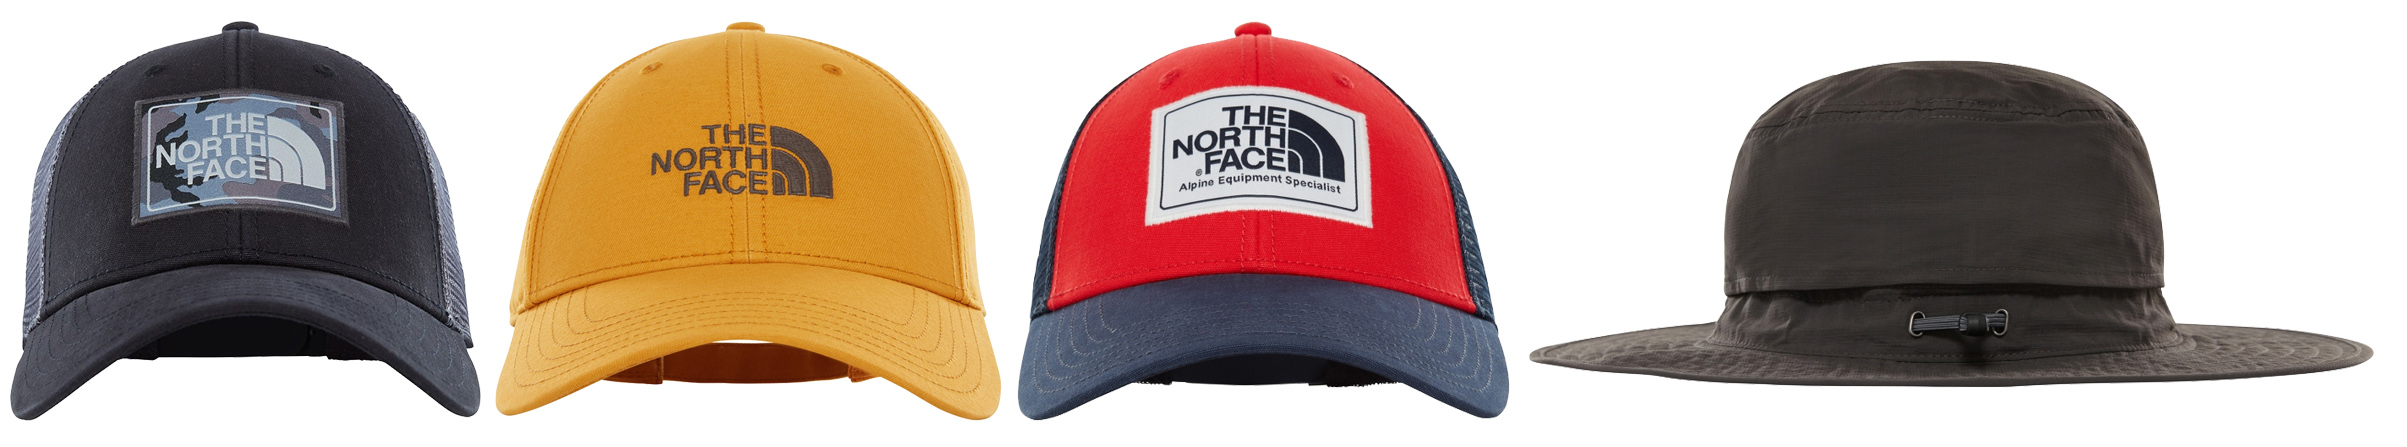 casquettes THE NORTH FACE